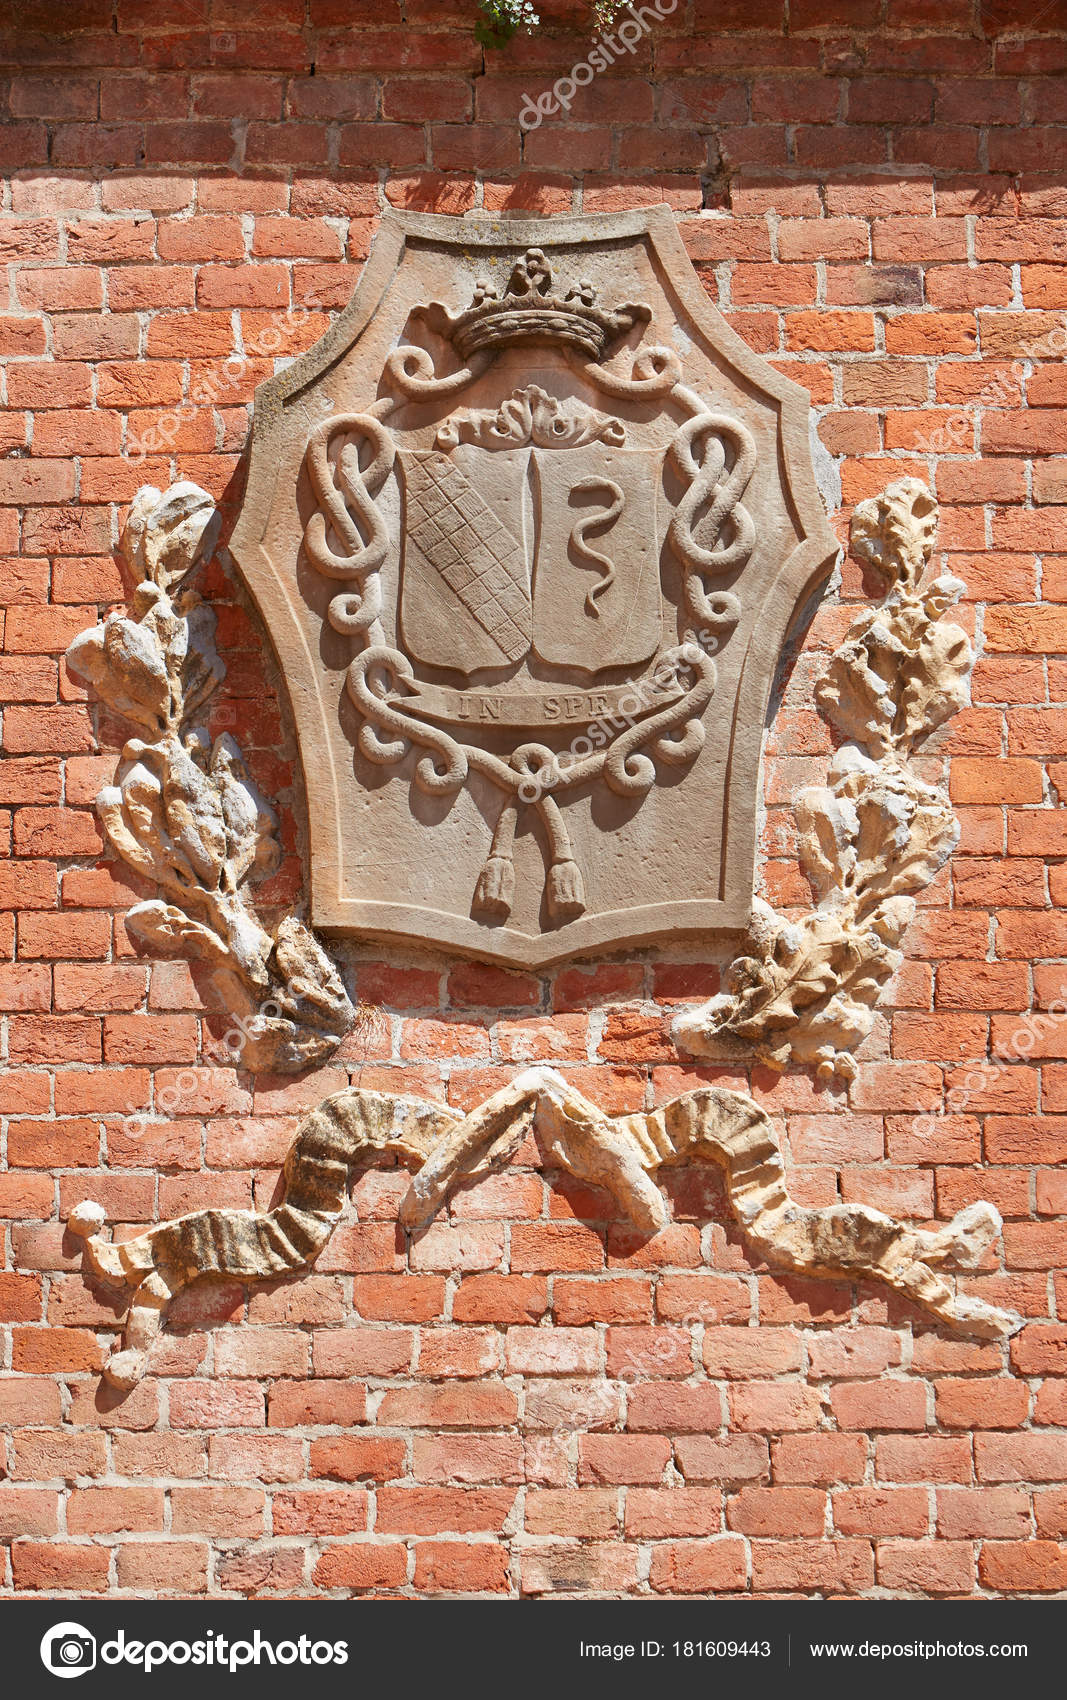 barolo italy august 6 barolo medieval castle coat of arms on red bricks wall in a sunny summer day on august 6 2016 in barolo italy